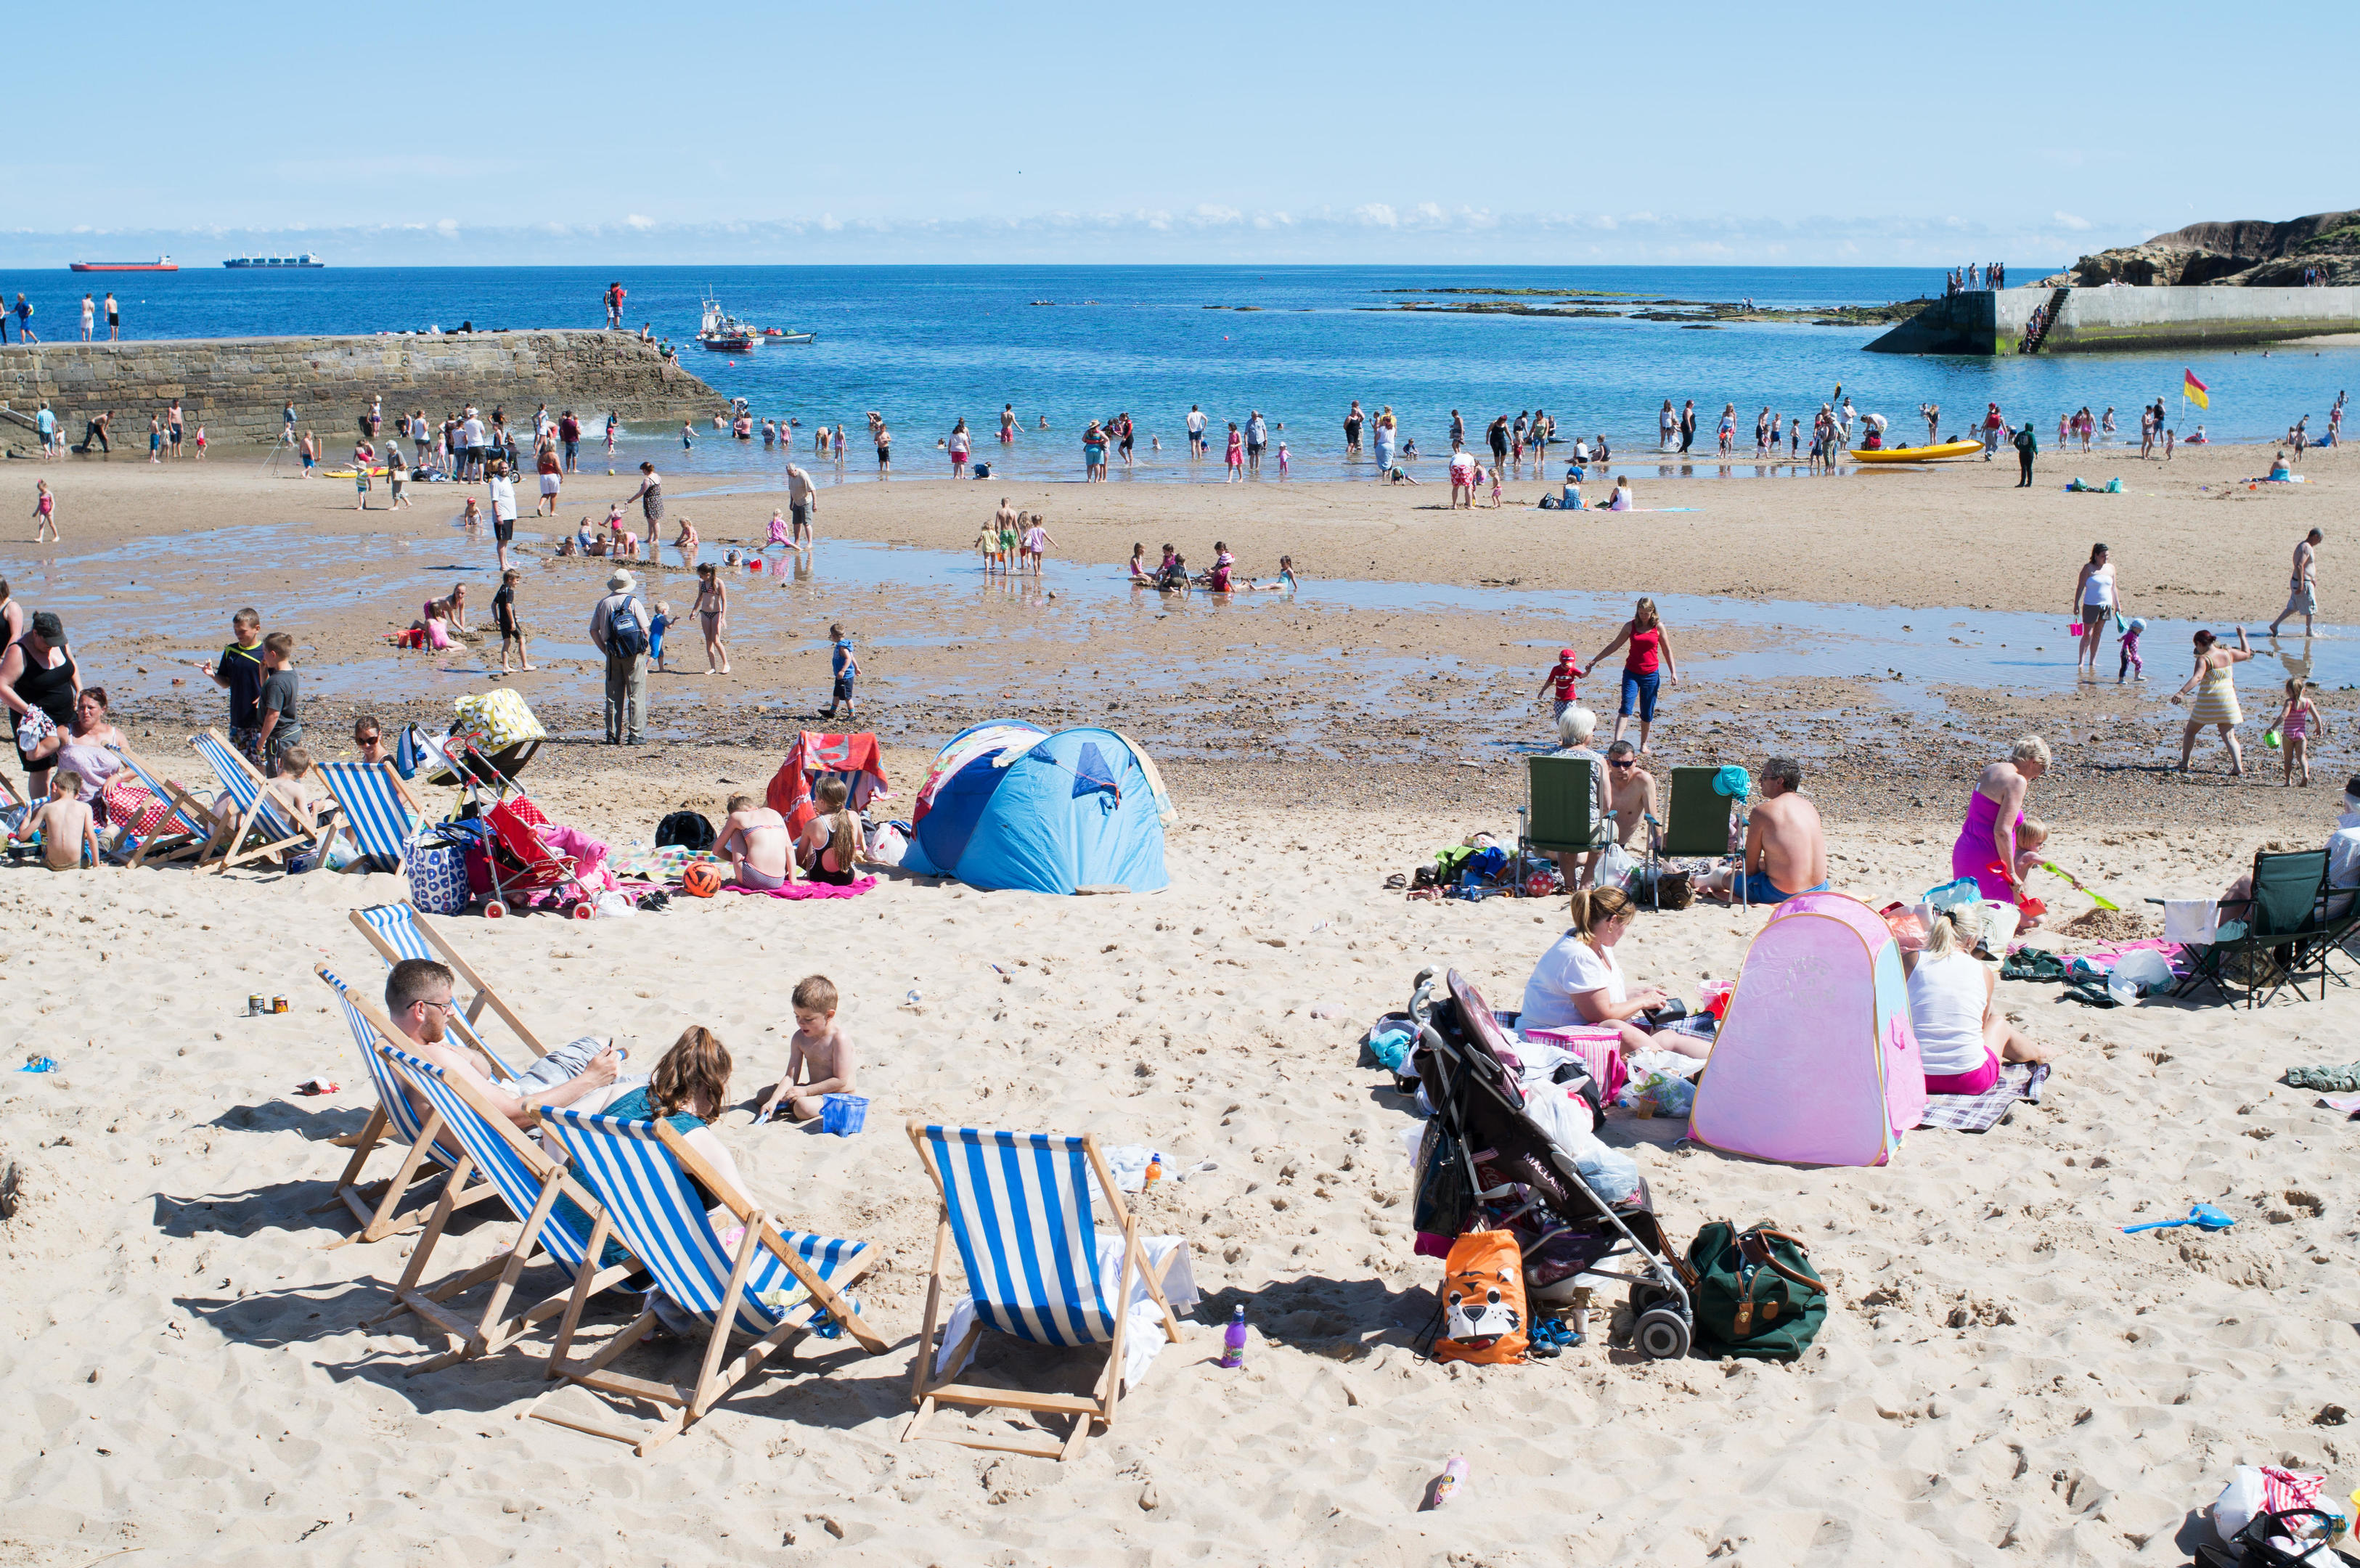 People across the UK flocked to beaches as the mercury rose this summer